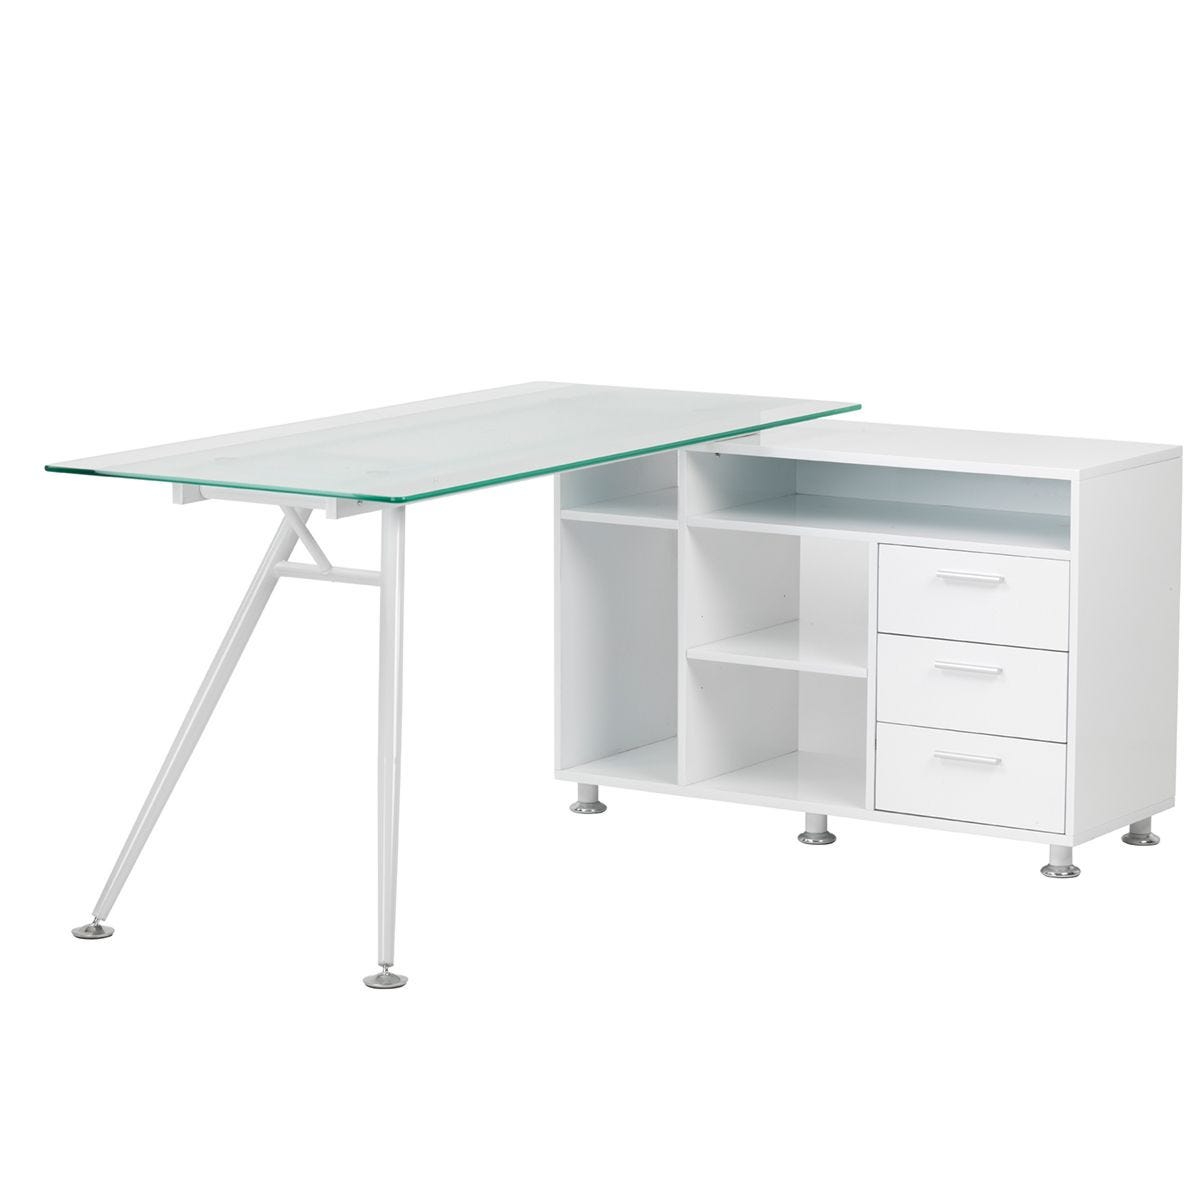 Alphason Augusta Work Centre Glass Desk